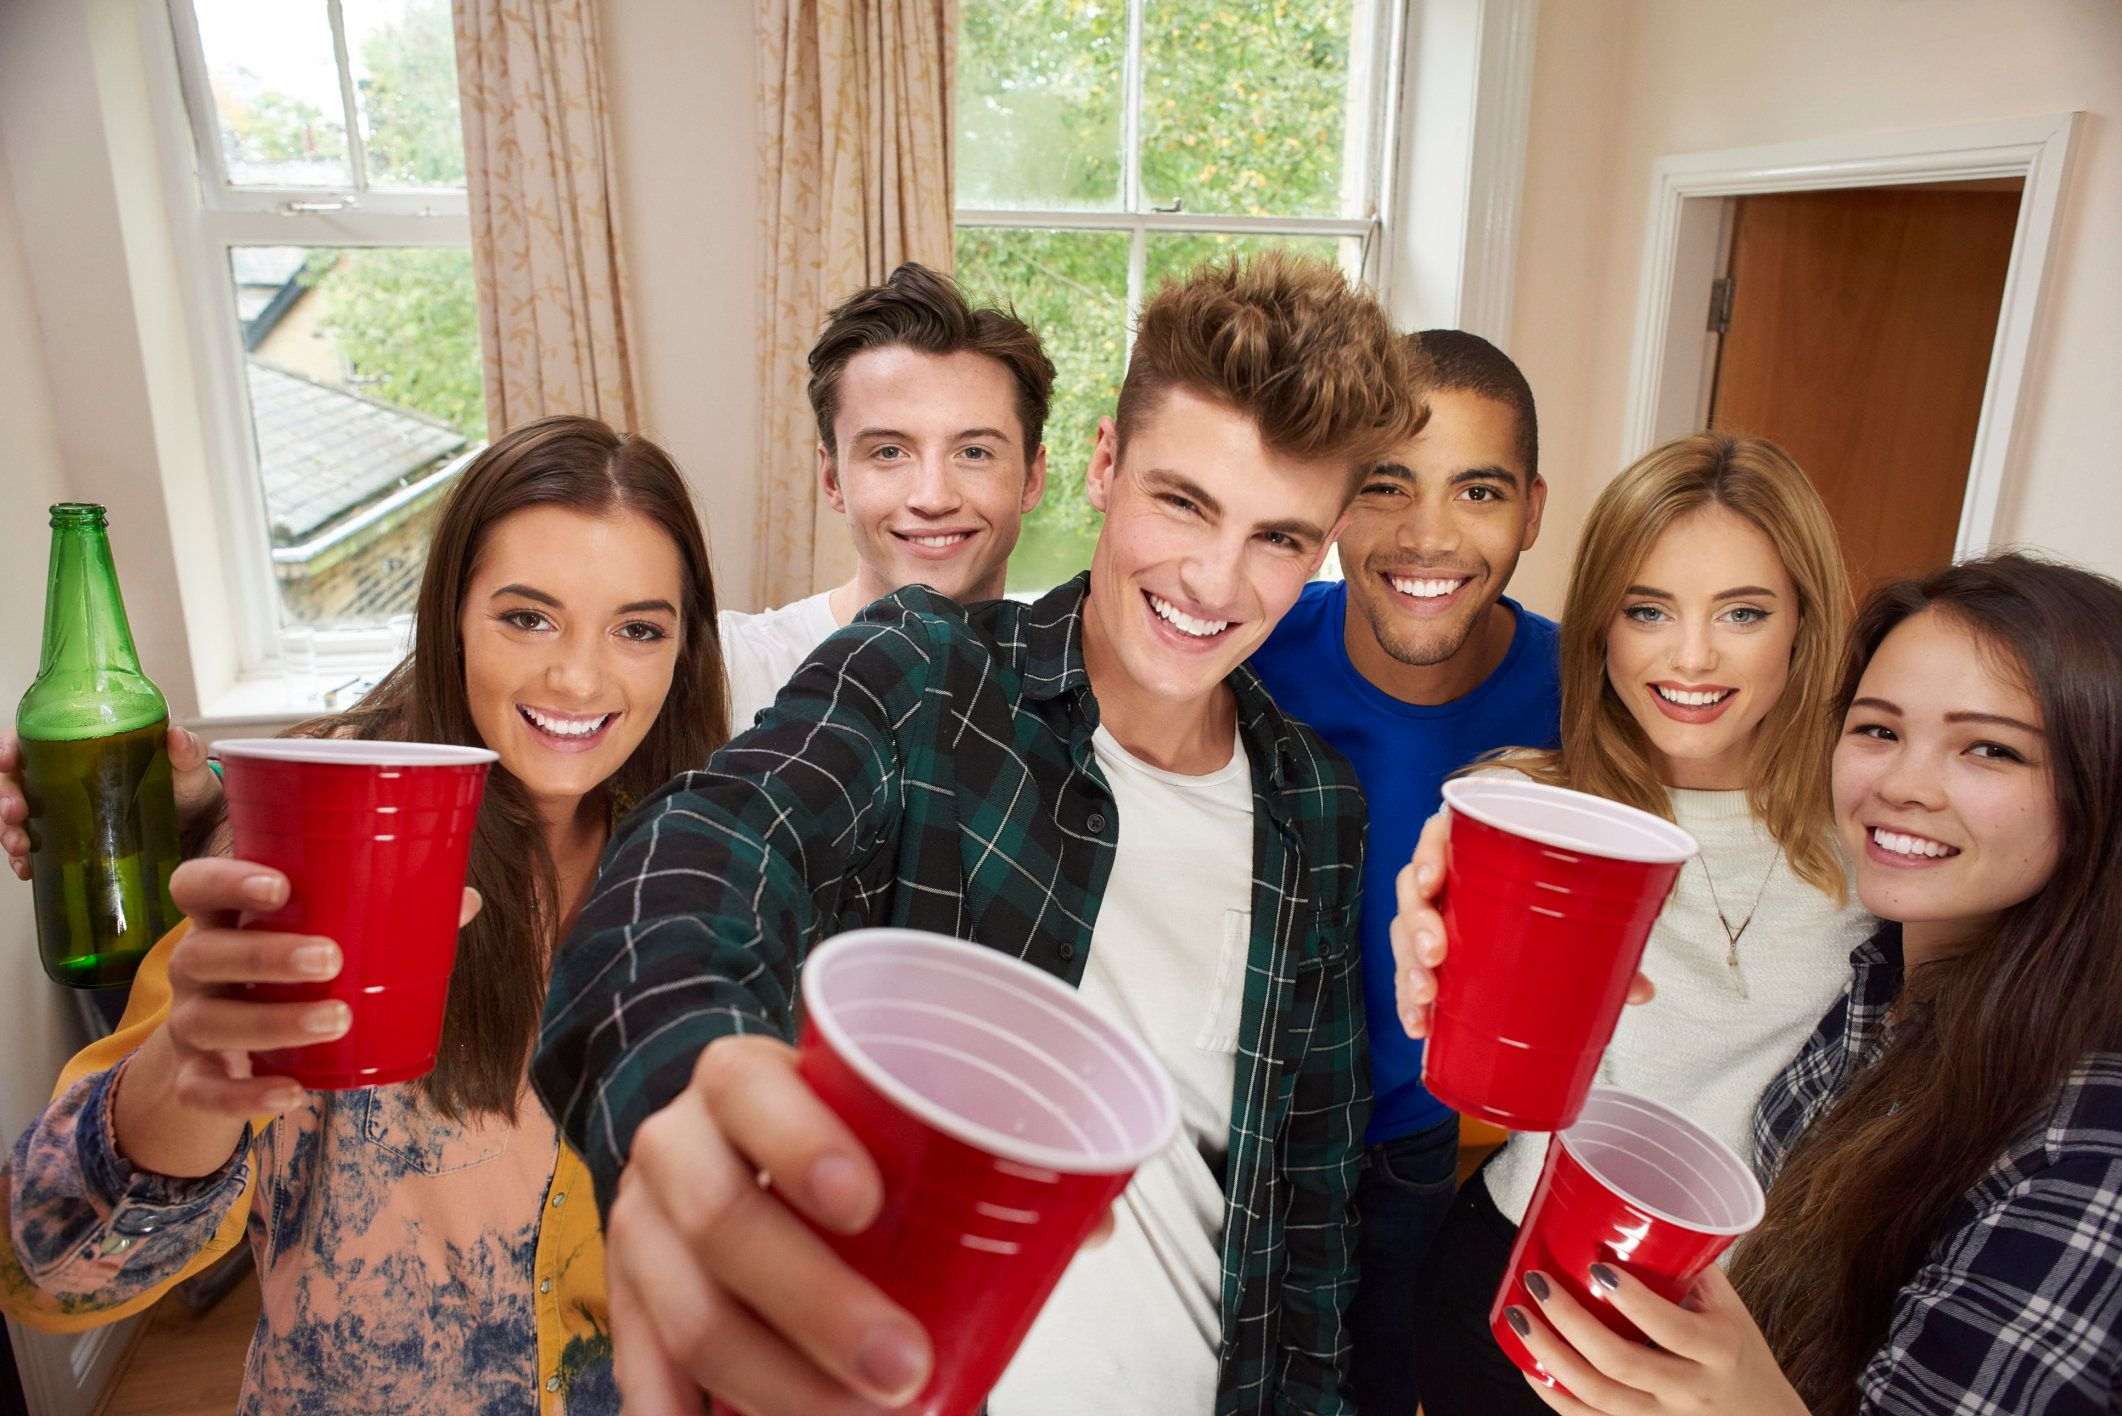 a mixed group of students sharing a house, have a pre-drinks party in their flat. They are drinking and dancing and messing about group hugging and looking at camera with a big cheers.